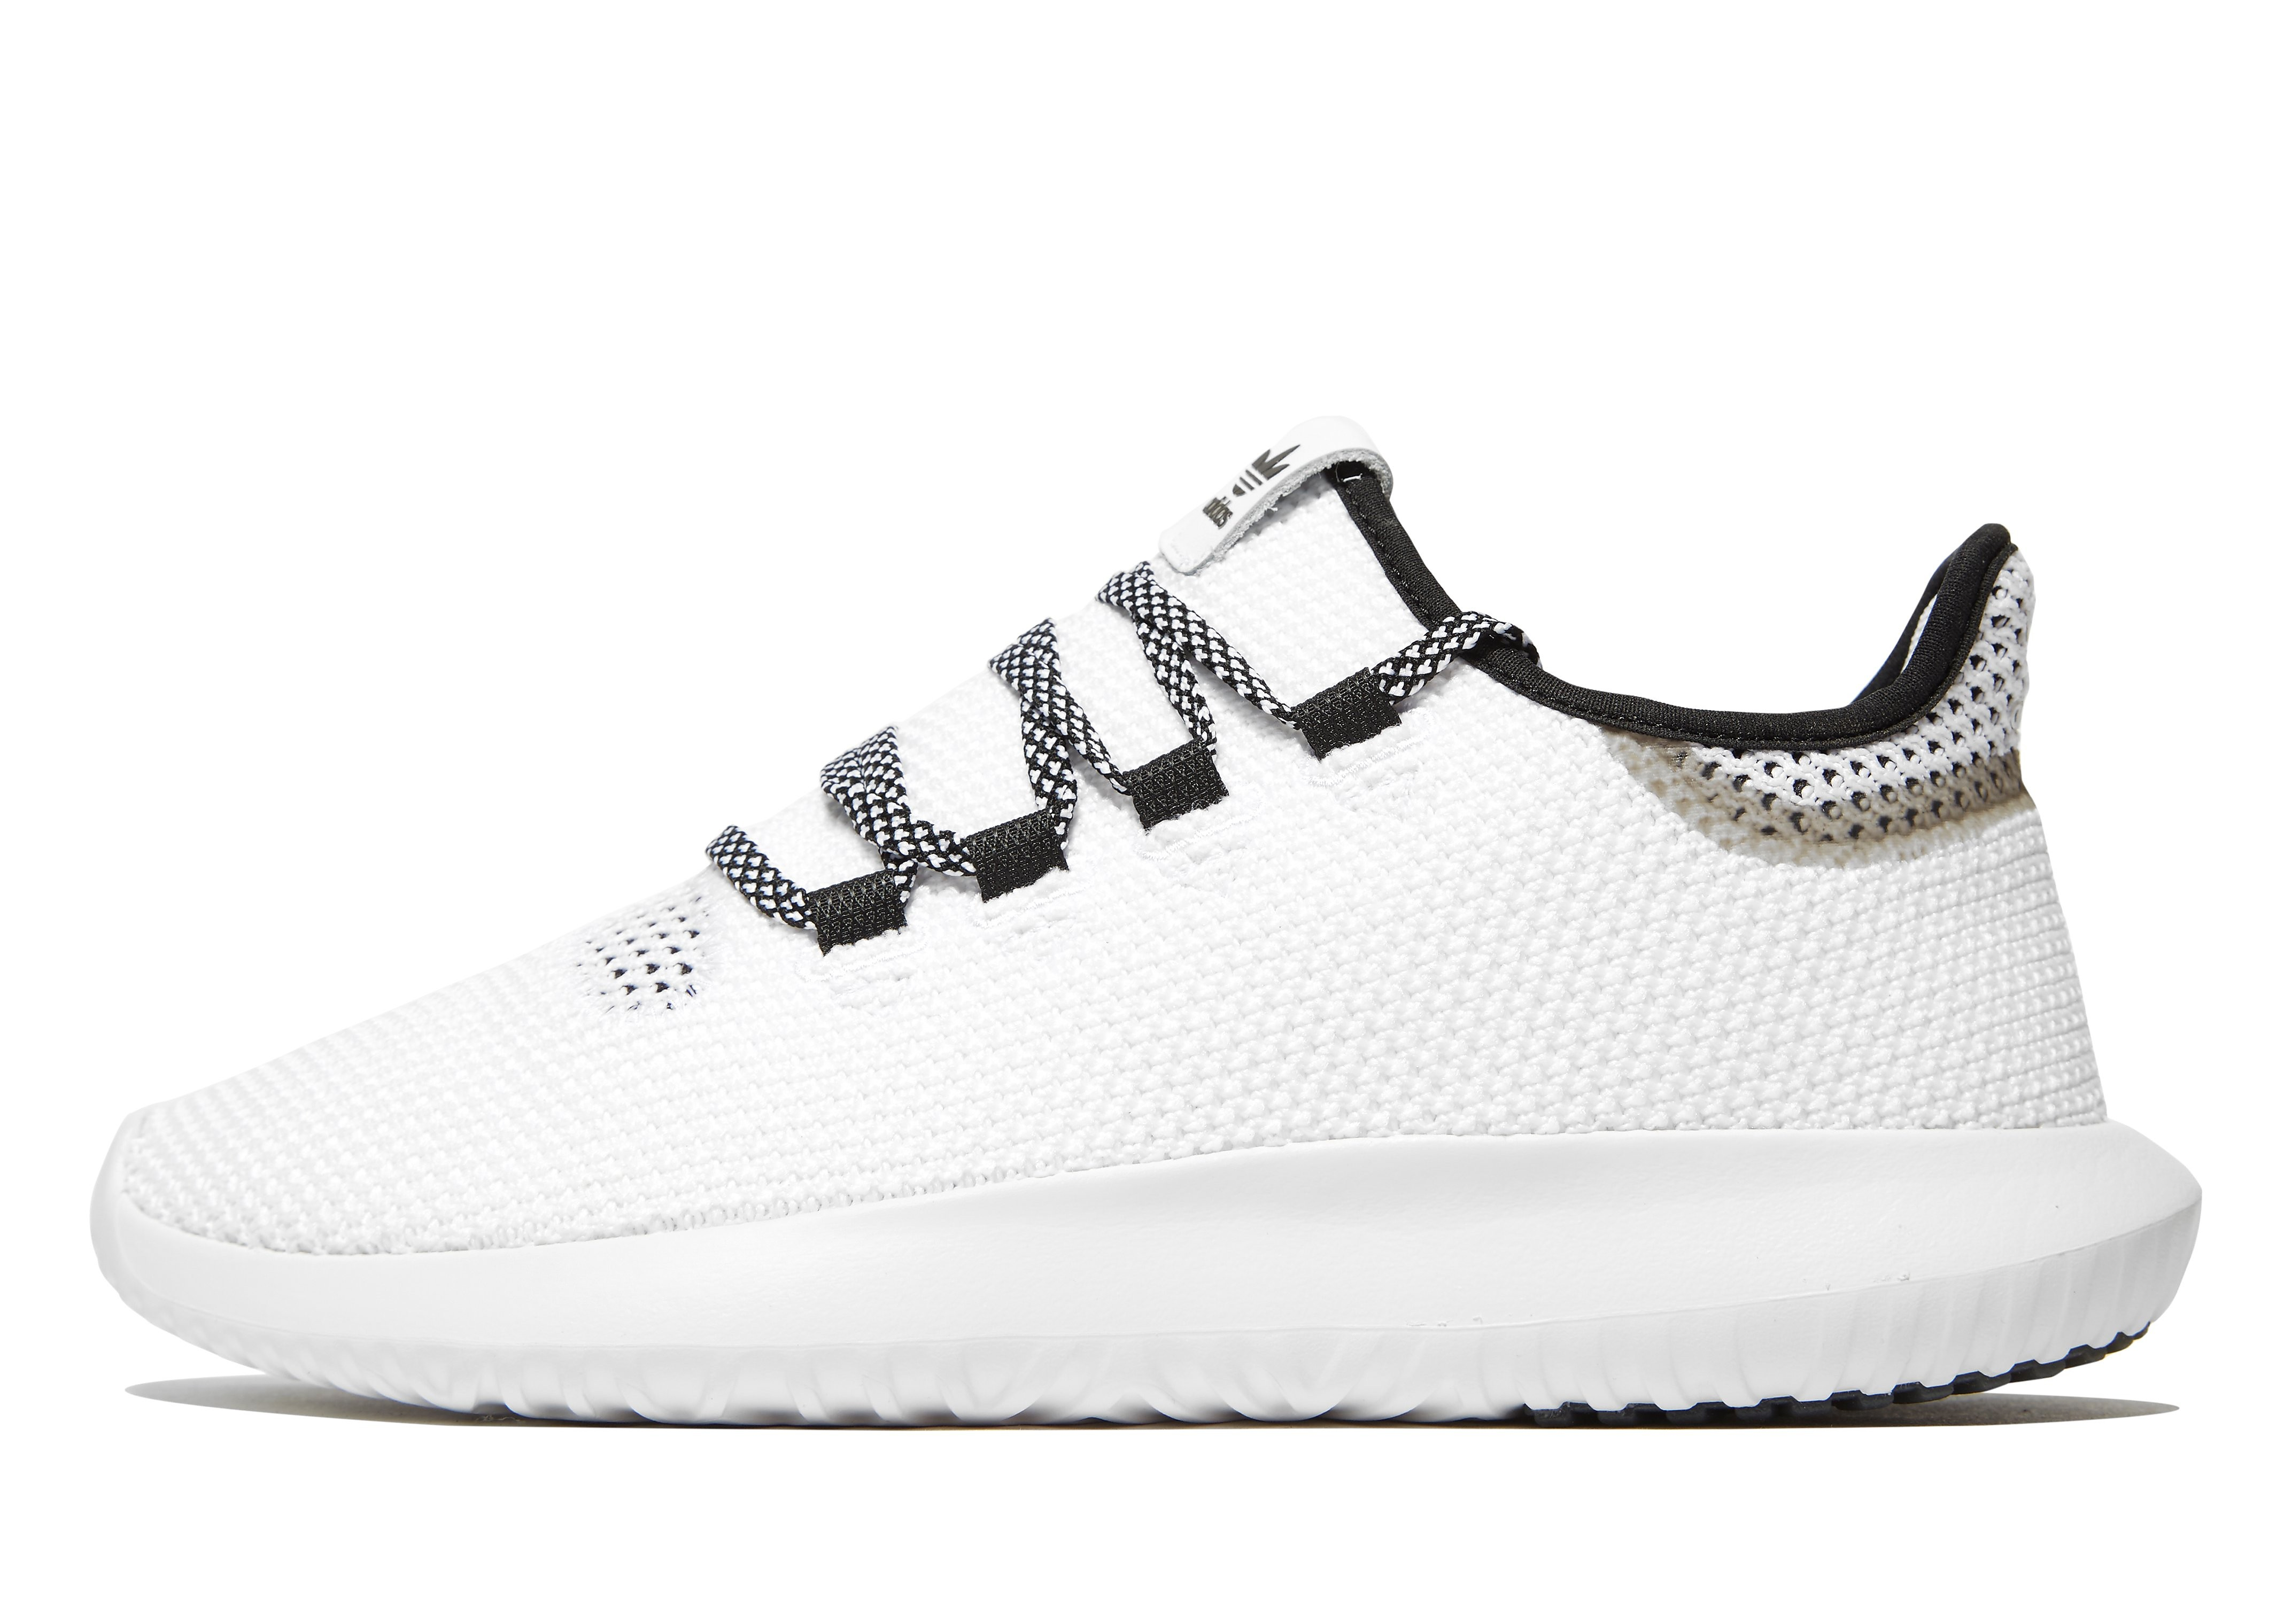 adidas Originals Tubular Shadow Knit II